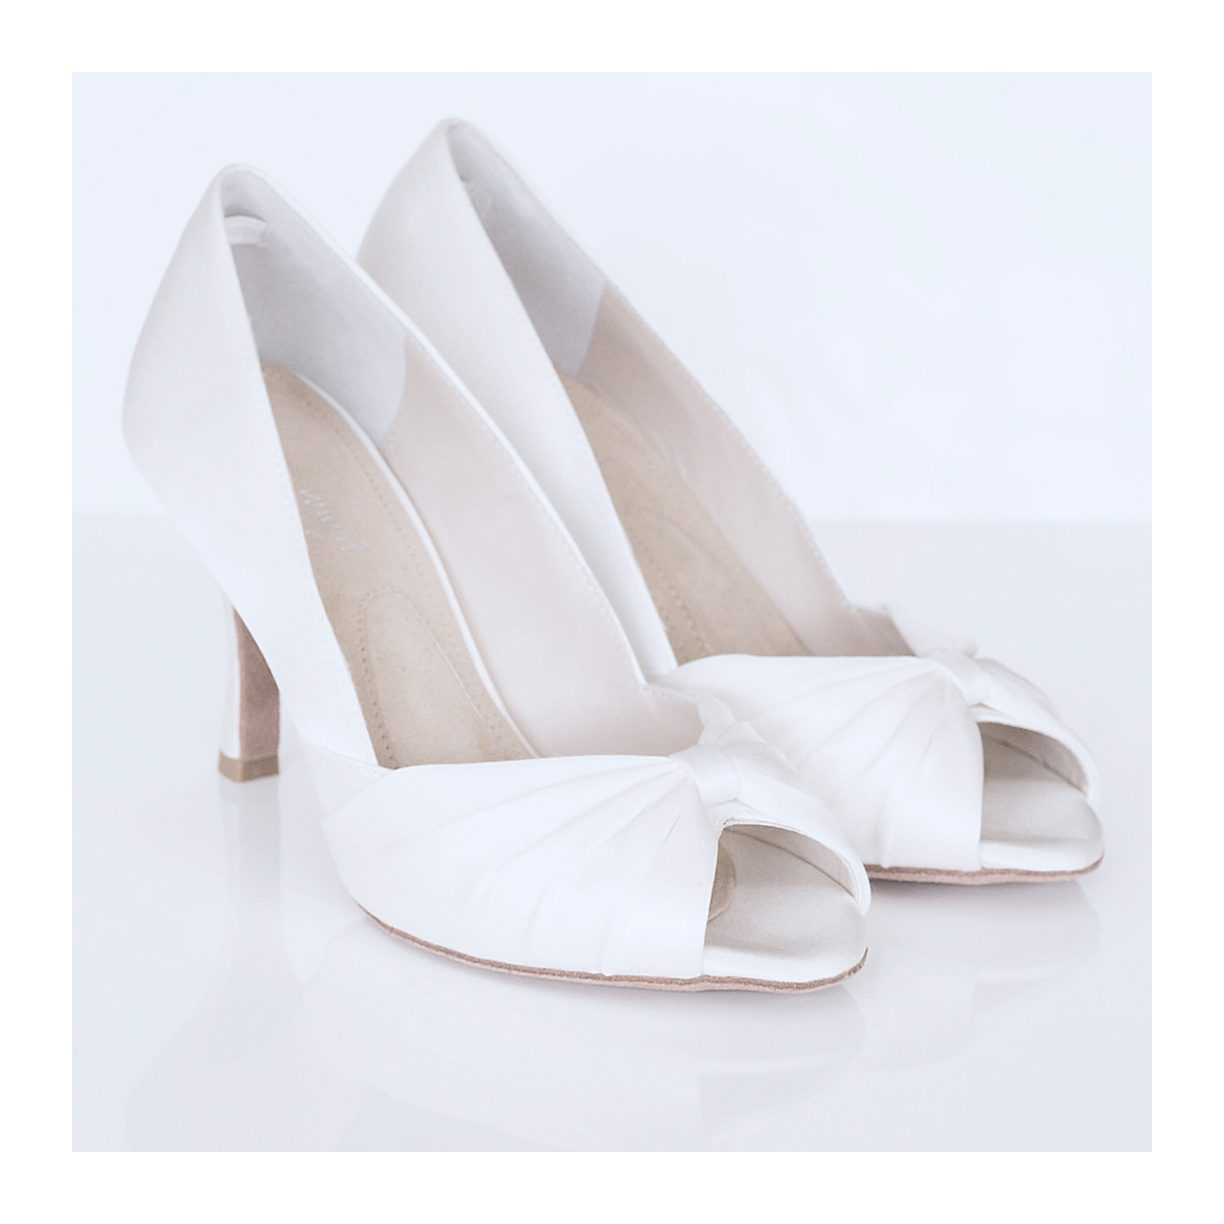 Browse David's Bridal collection of women's champagne colored dress shoes including high heels, pumps & flats perfect to wear to a wedding, evening events, or prom! Shop champagne gold shoes, at amazing prices and great selection of widths and sizes!